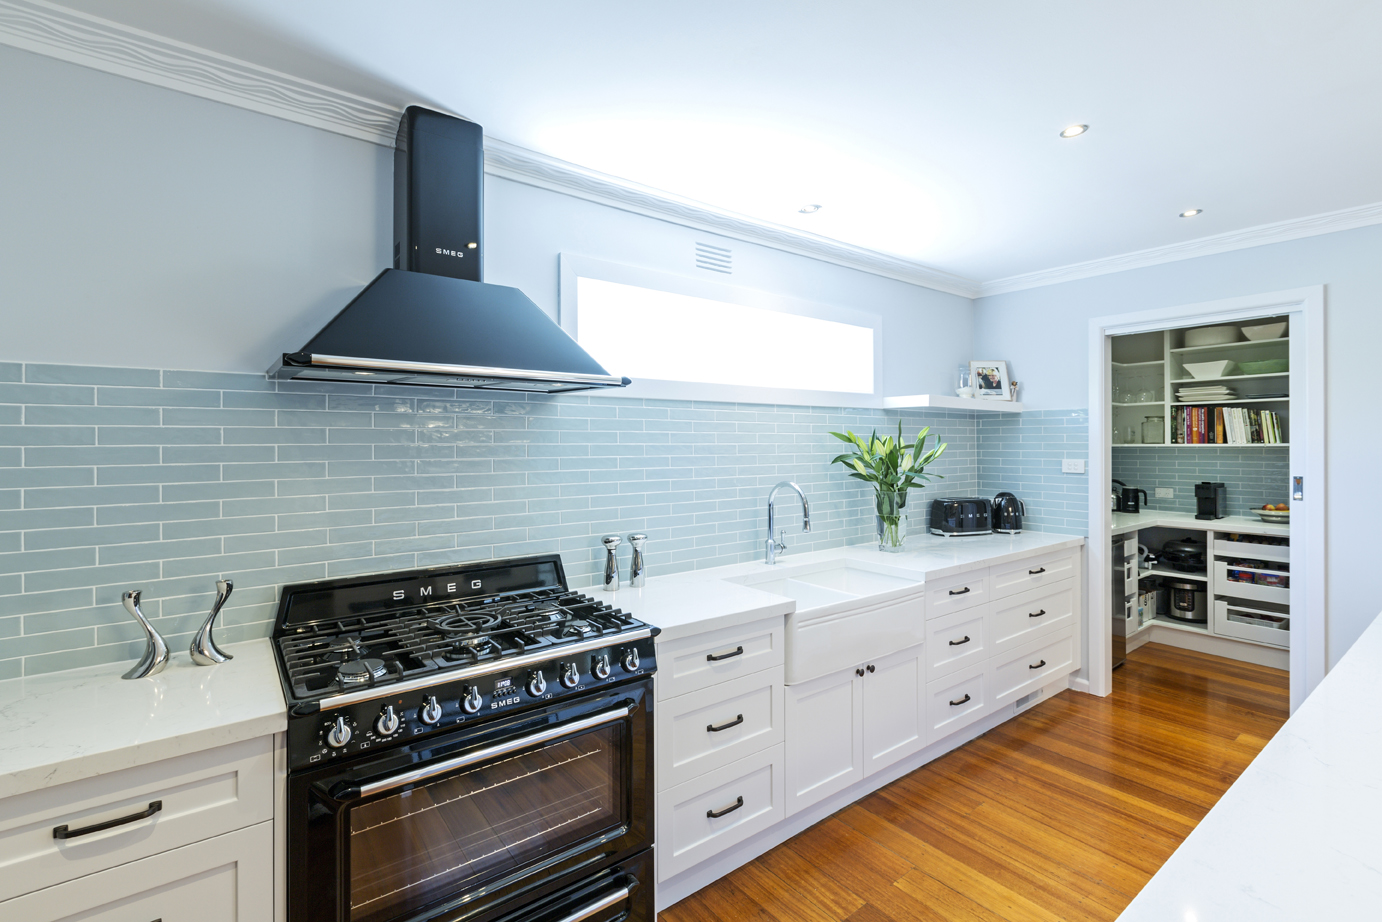 white kitchen with hardwood floors, SMEG oven and extra storage room